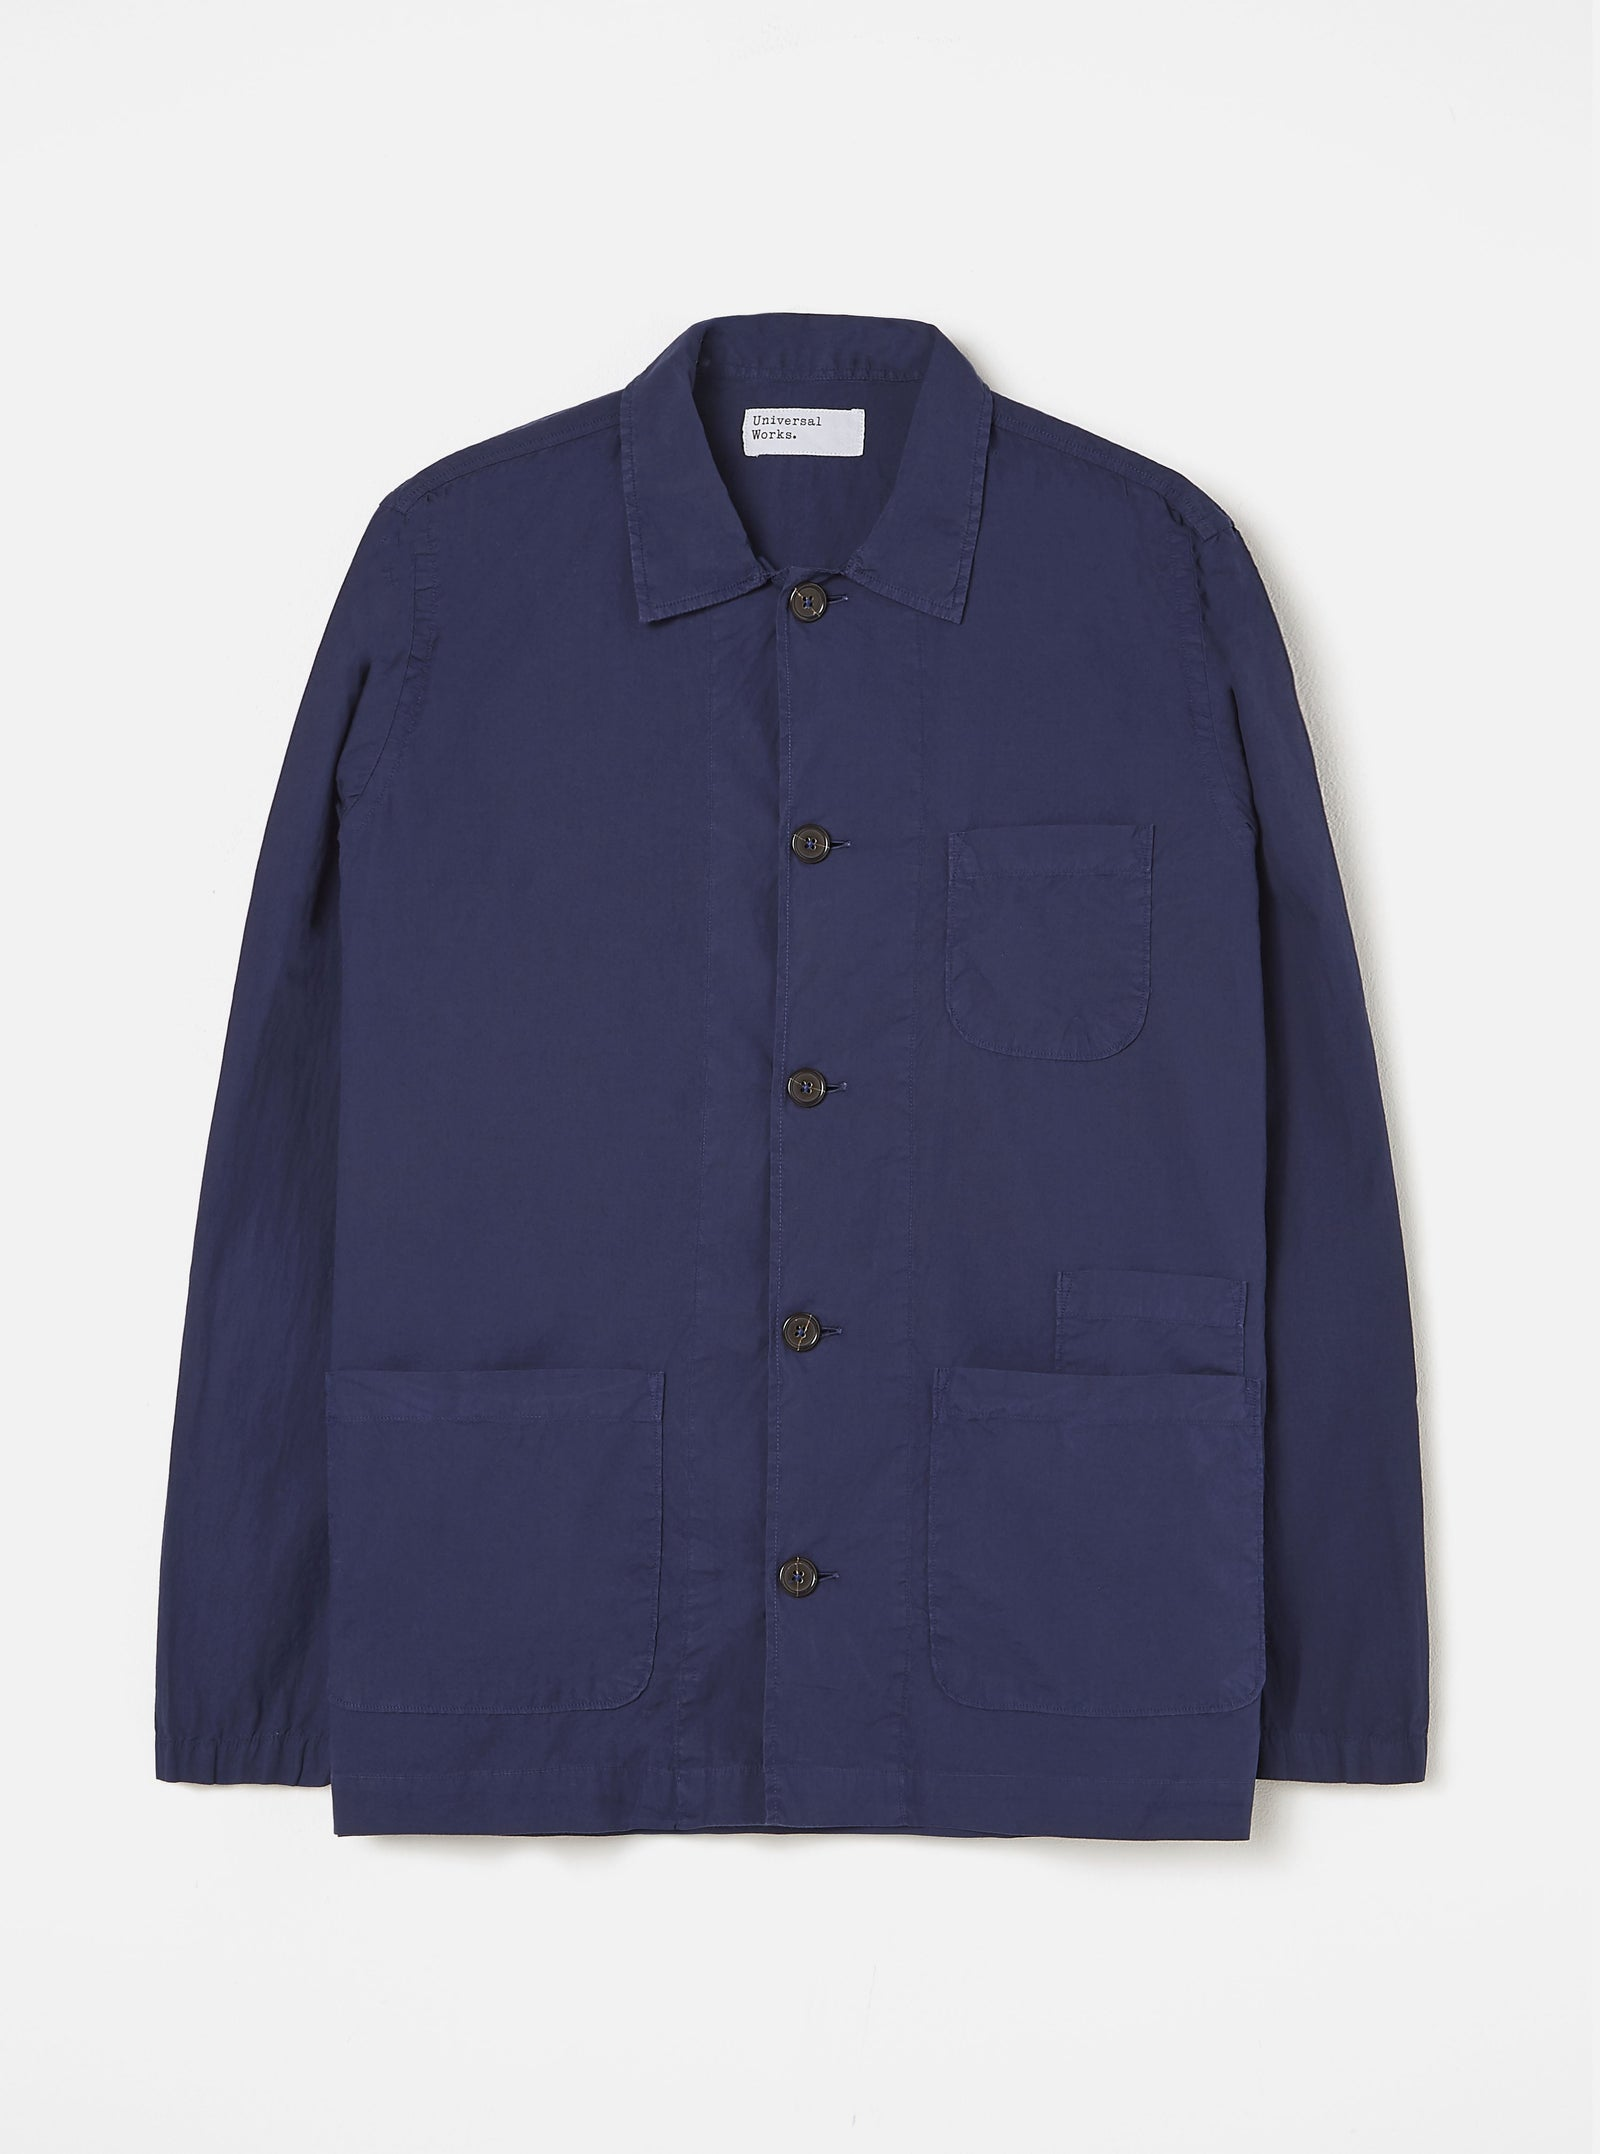 Universal Works Bakers Overshirt in Navy Poplin